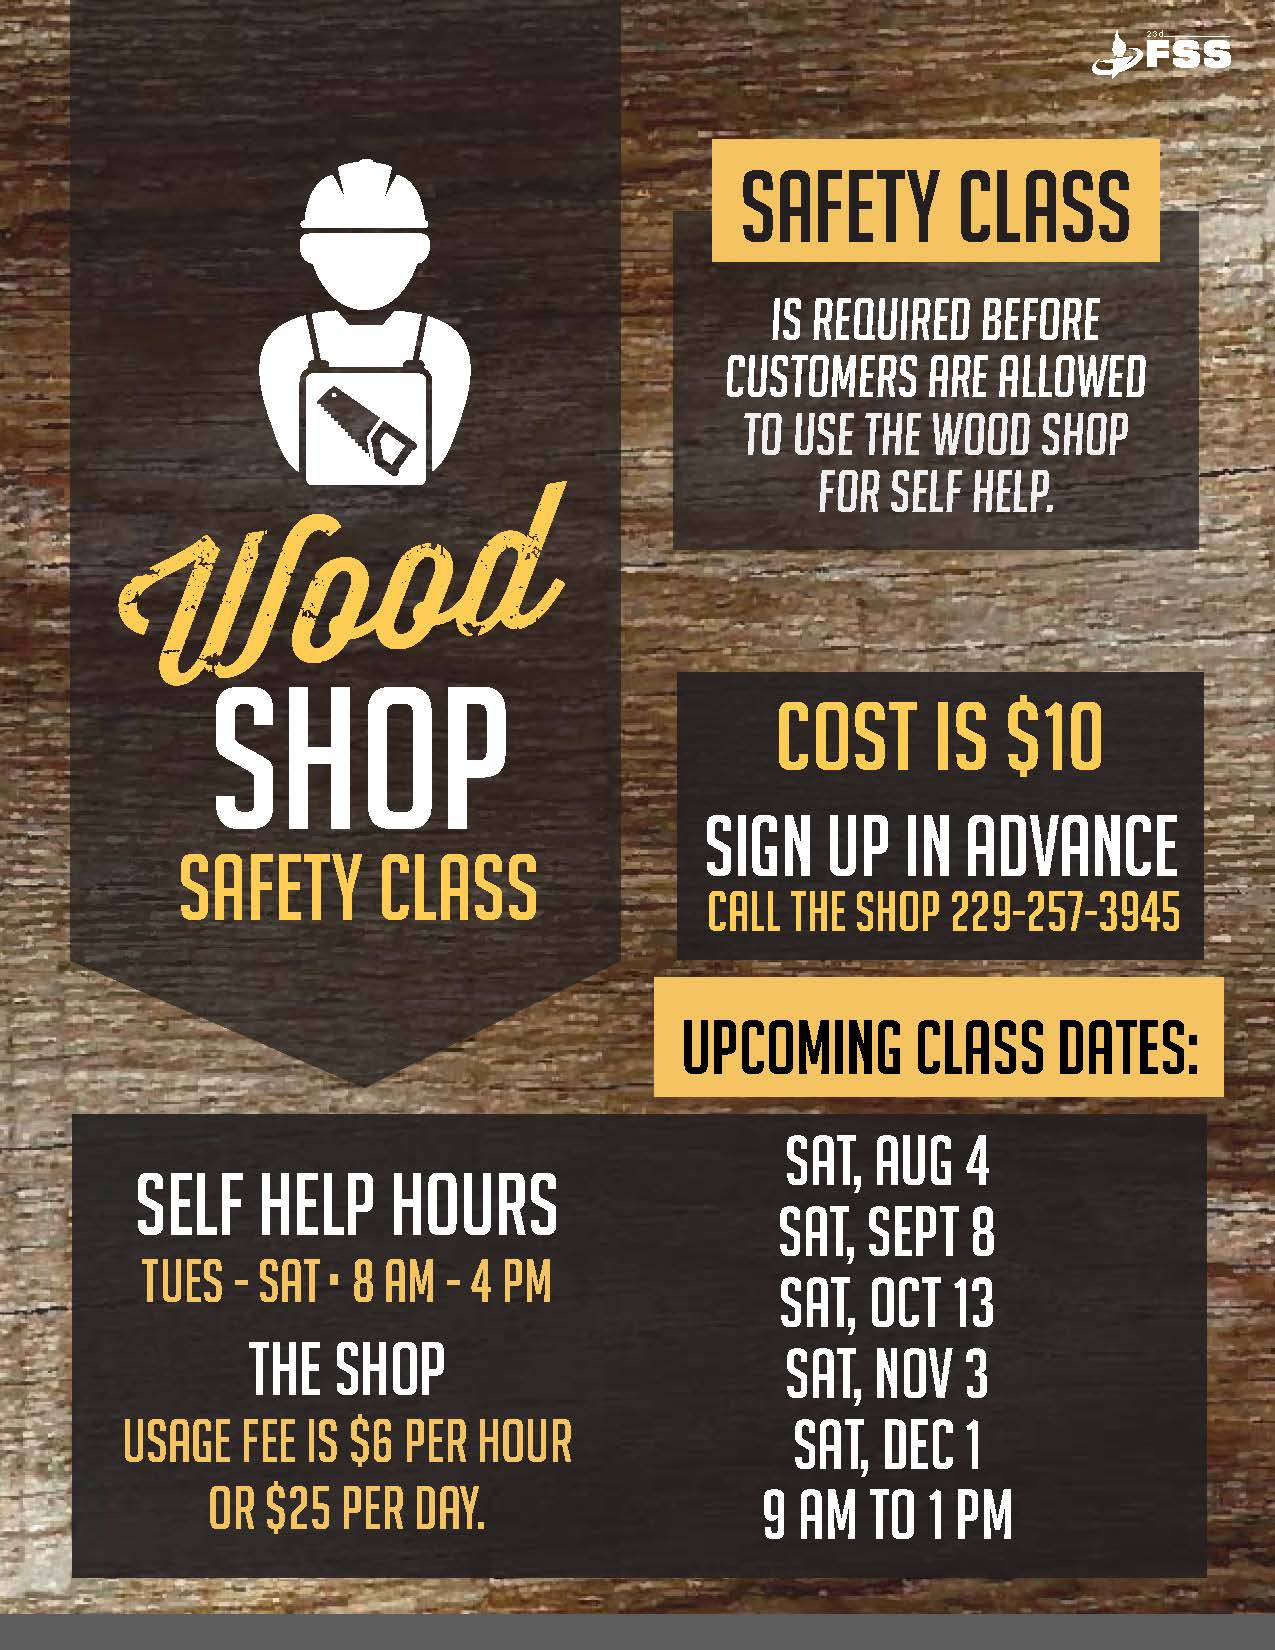 Wood Shop Safety Class Moody Afb Force Support Squadron